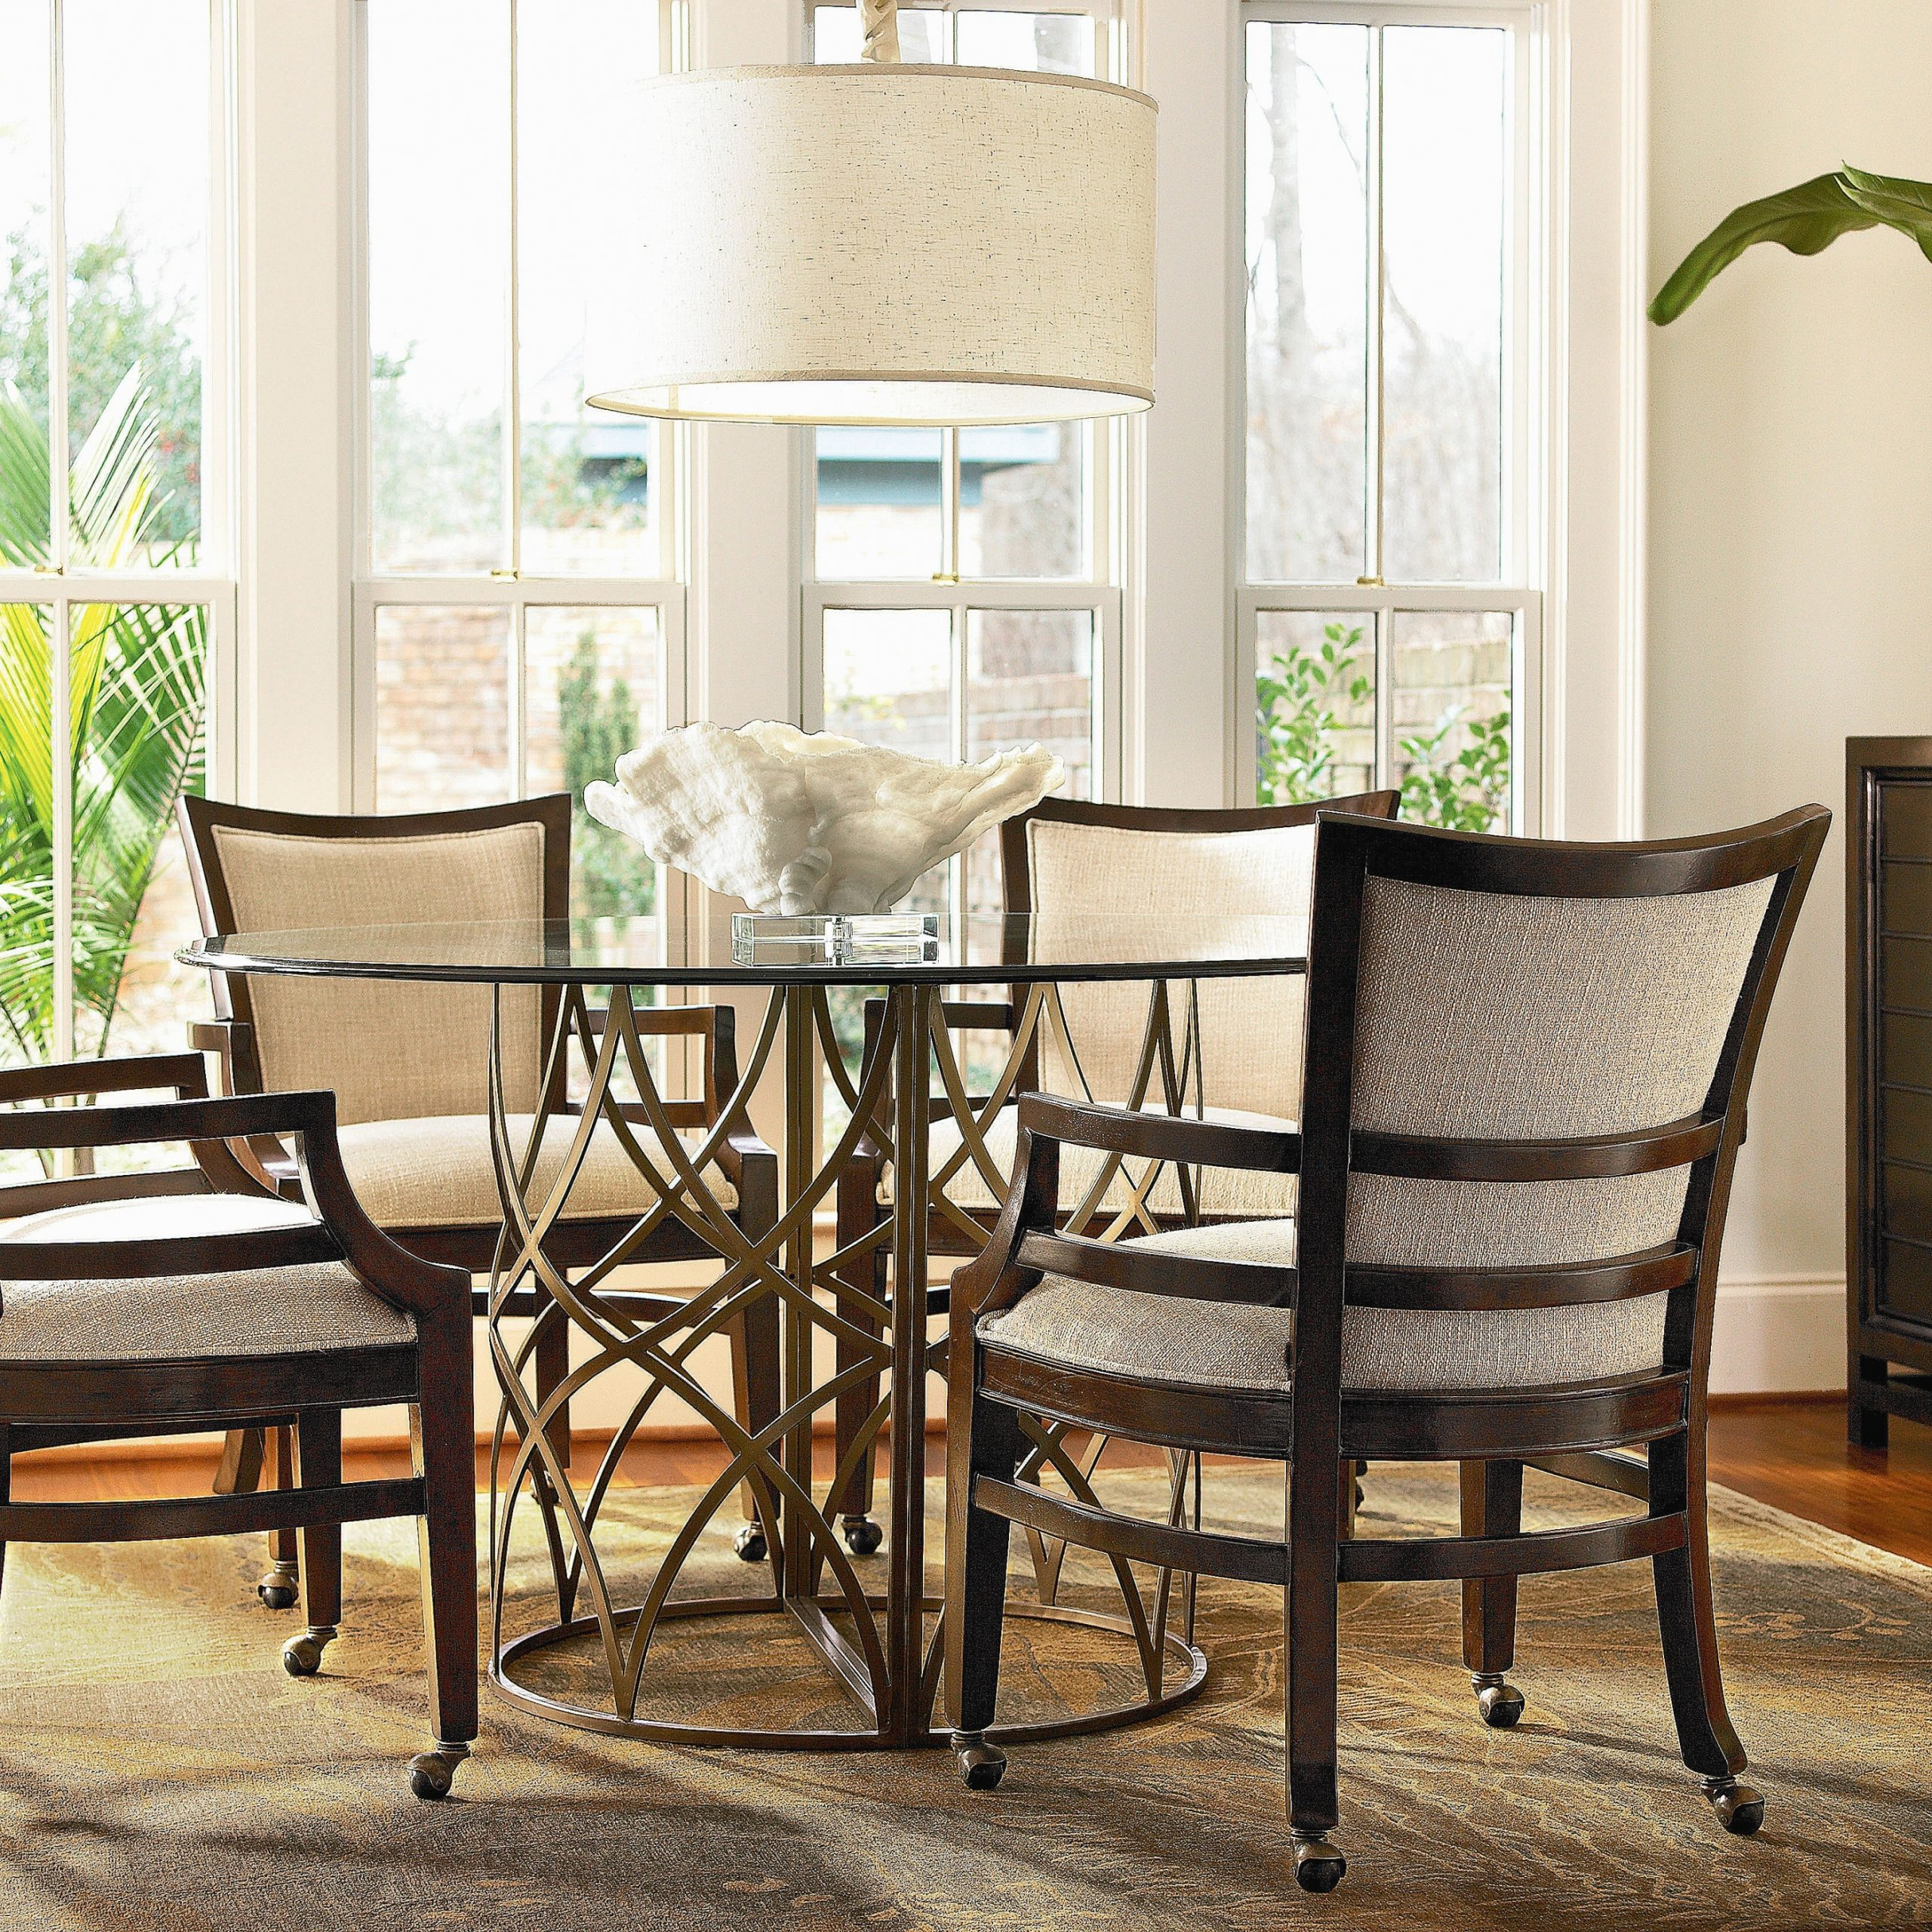 rolling dining chairs with arms